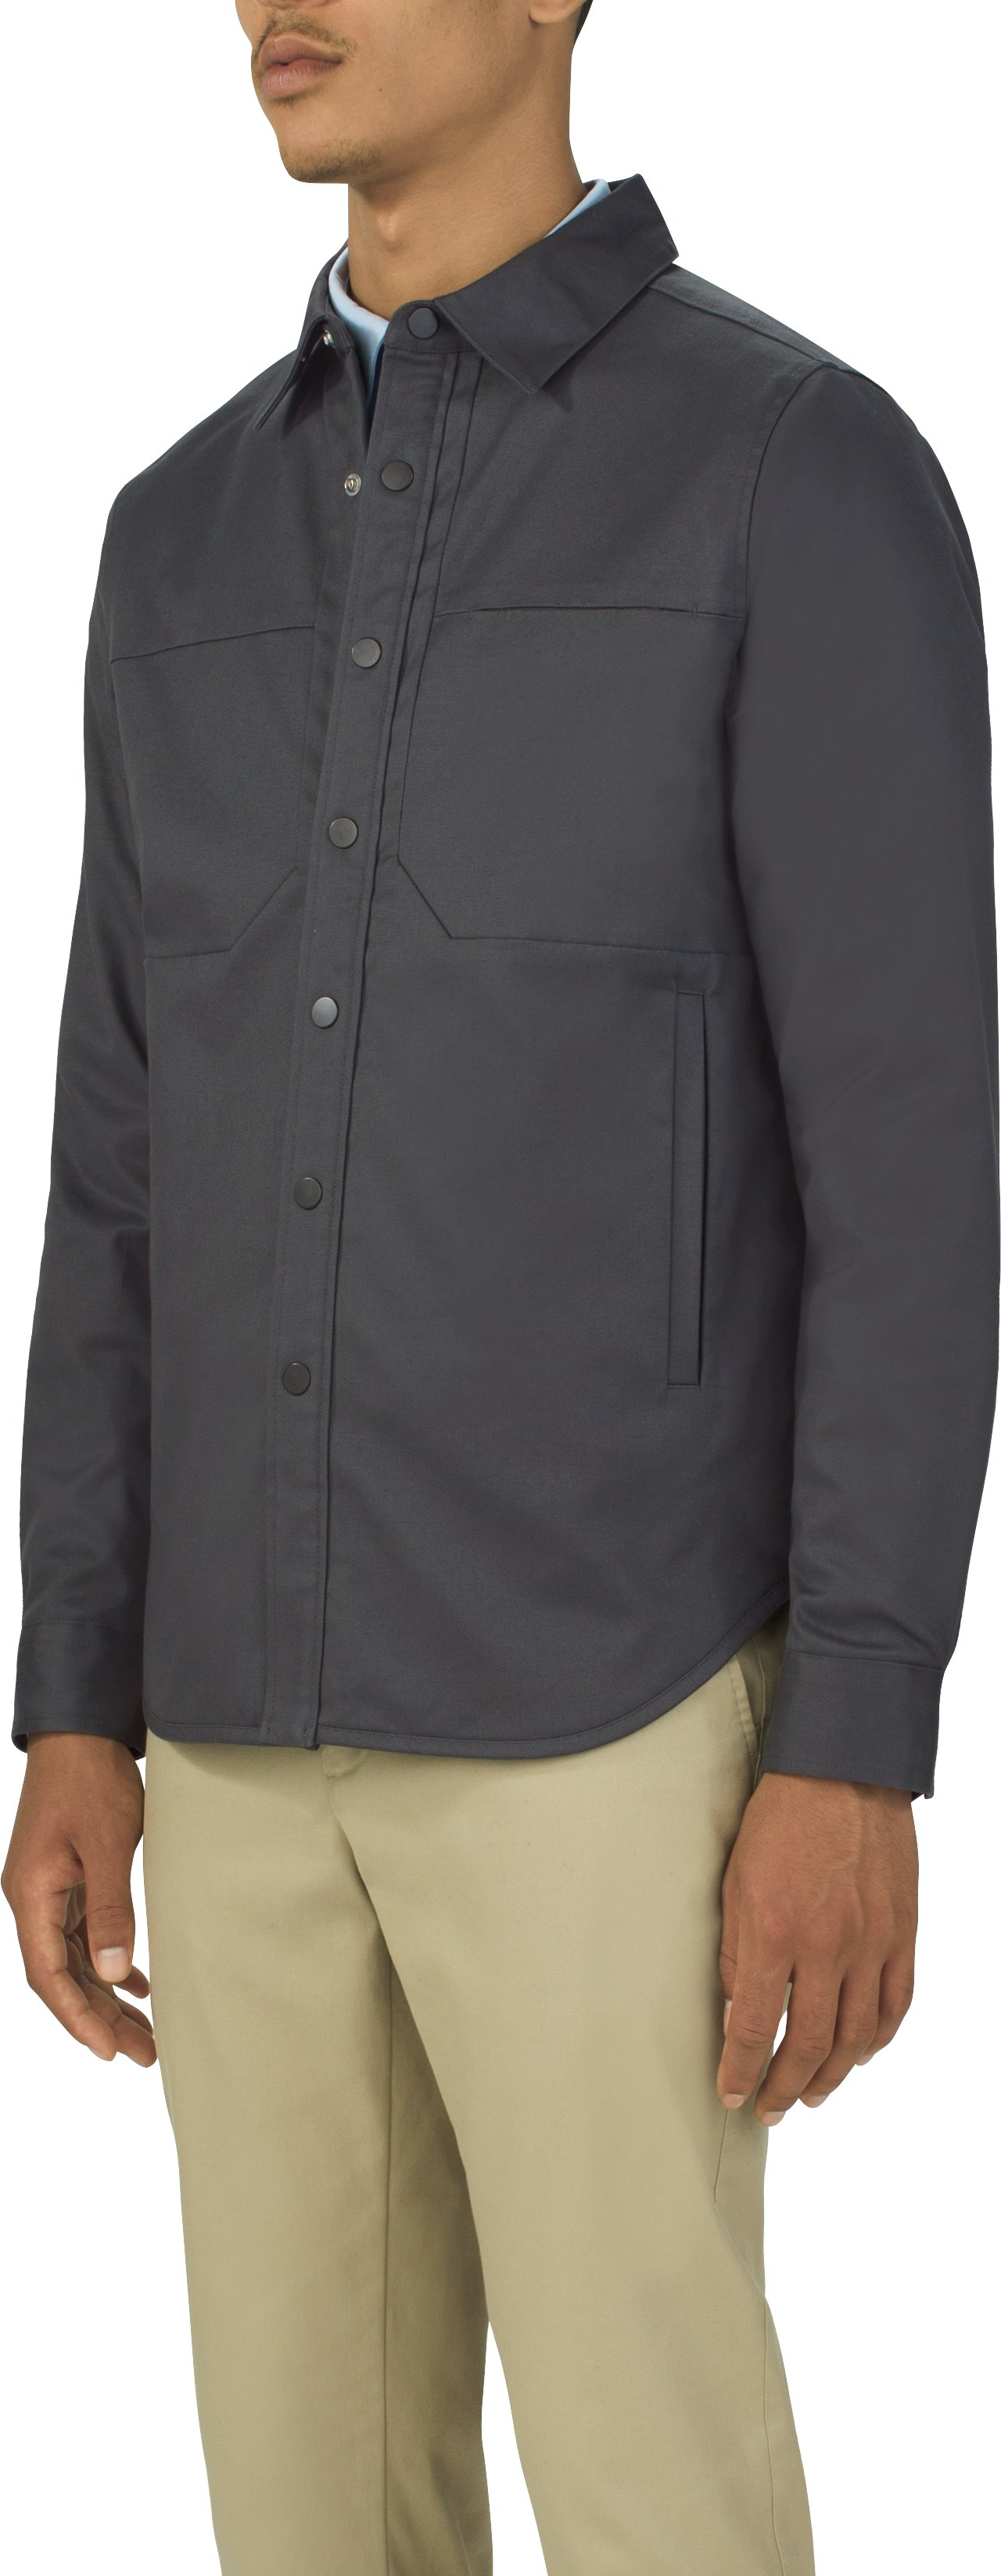 Men's UAS Fieldhouse Workshirt Jacket, Gray, undefined